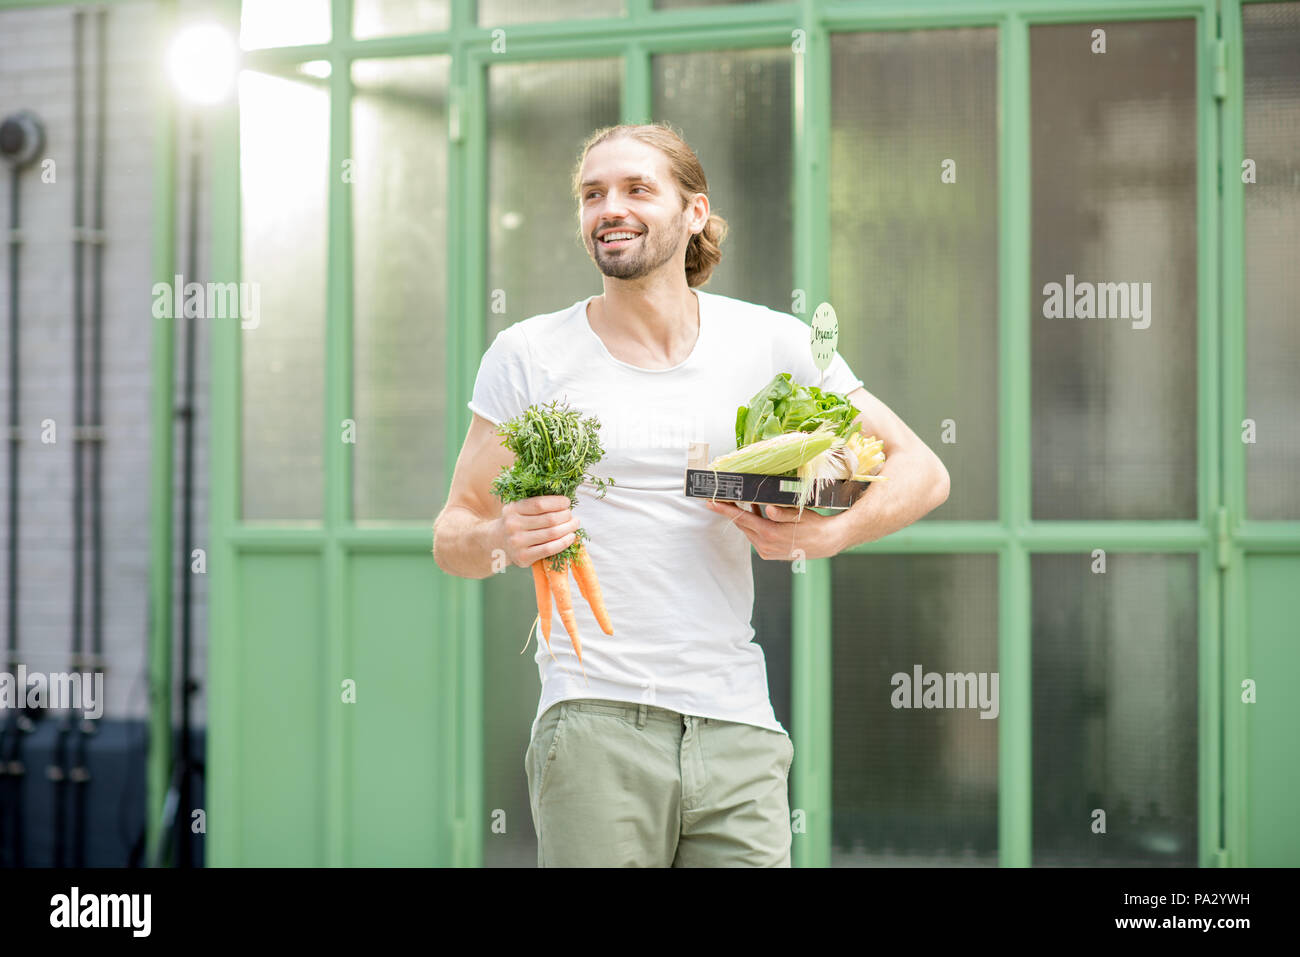 Man carrying box full of fresh raw vegetables just bought at the local market outdoors on the green background Stock Photo